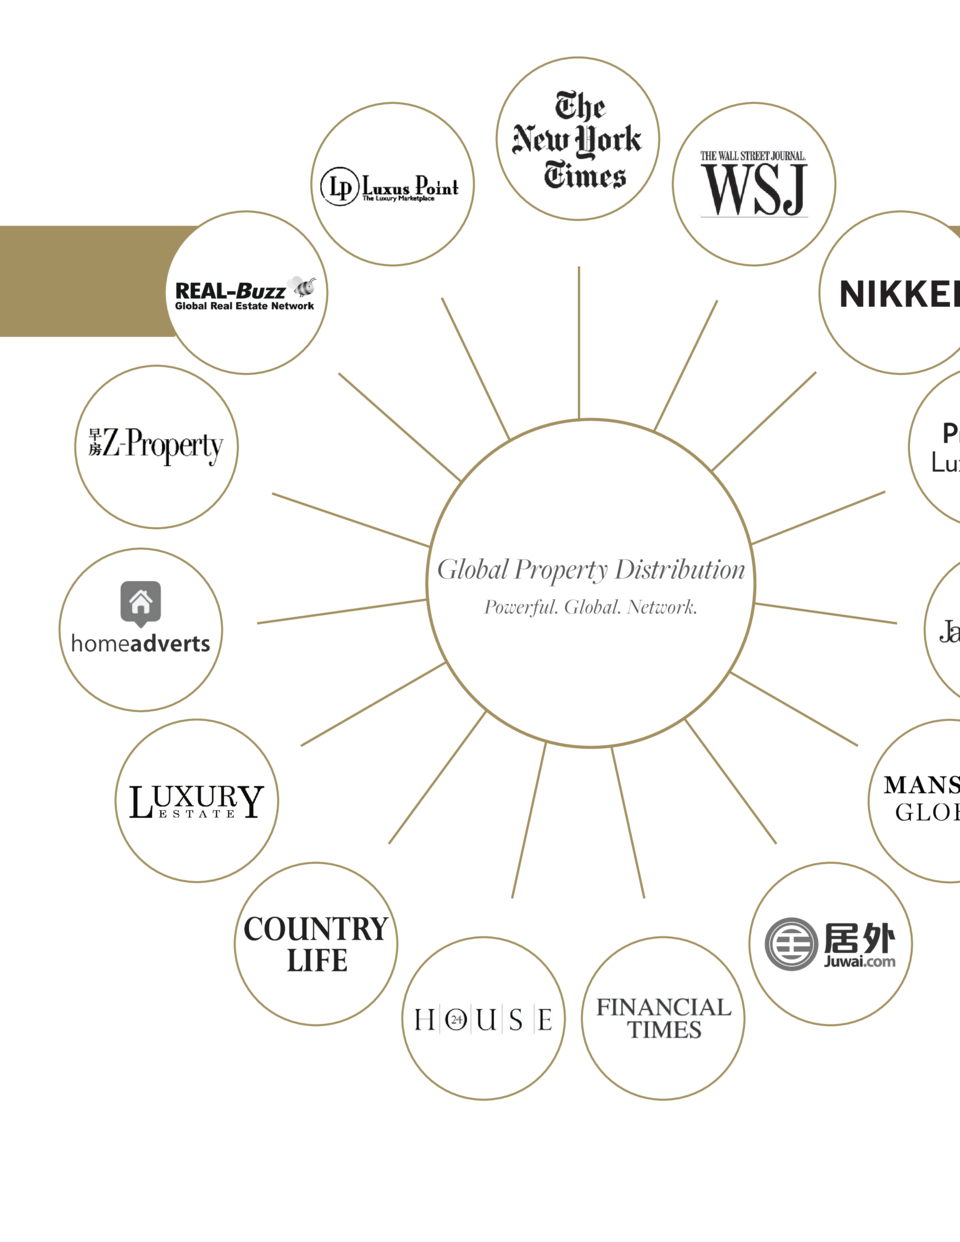 NIKKEI  Pro Luxu  Global Property Distribution Powerful. Global. Network.